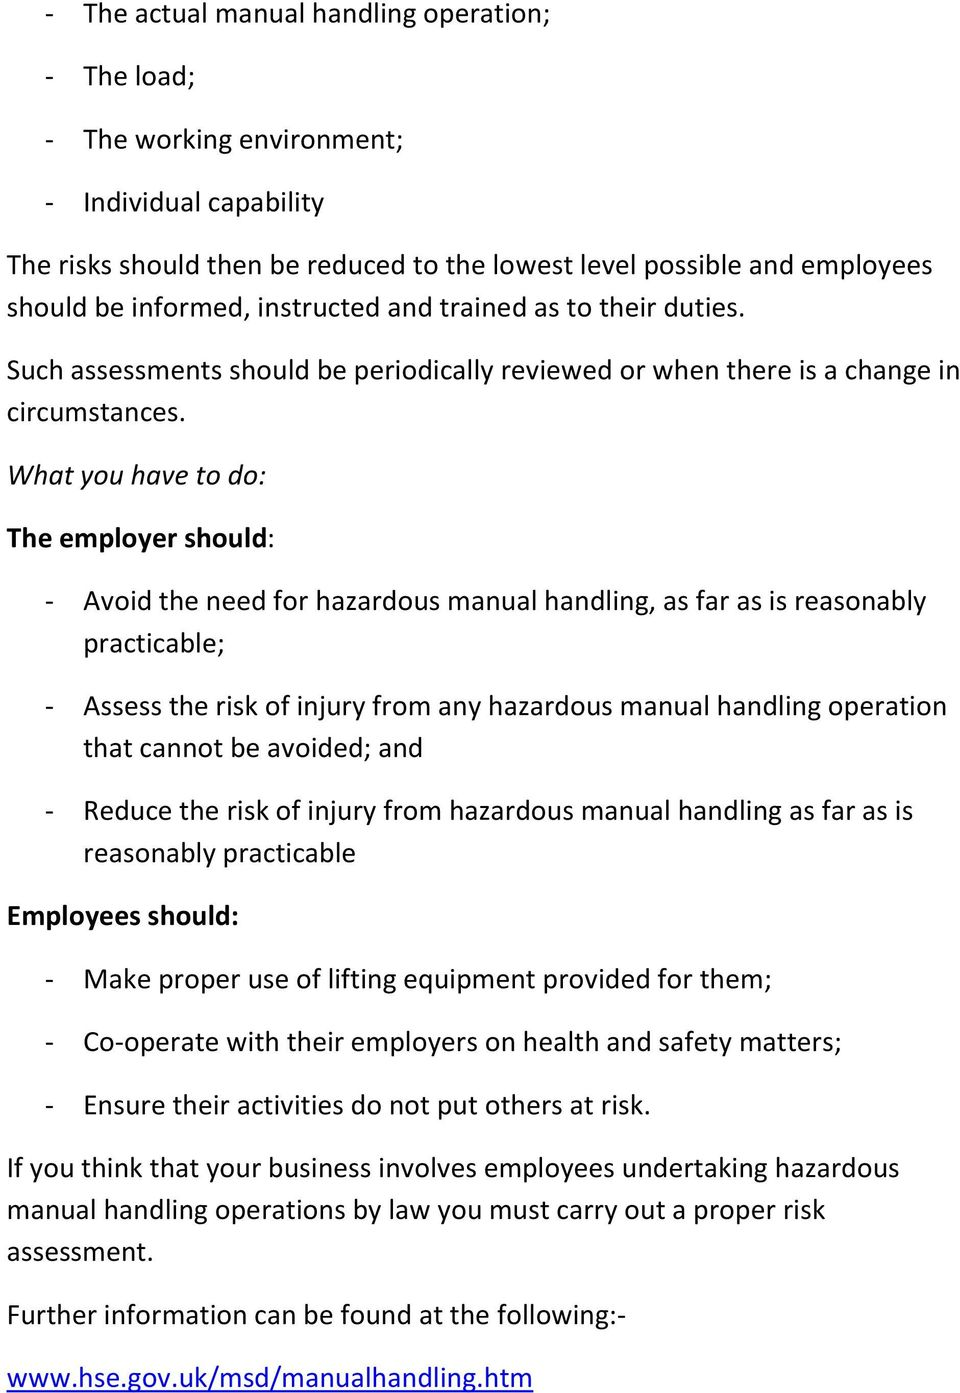 What you have to do: The employer should: - Avoid the need for hazardous manual handling, as far as is reasonably practicable; - Assess the risk of injury from any hazardous manual handling operation